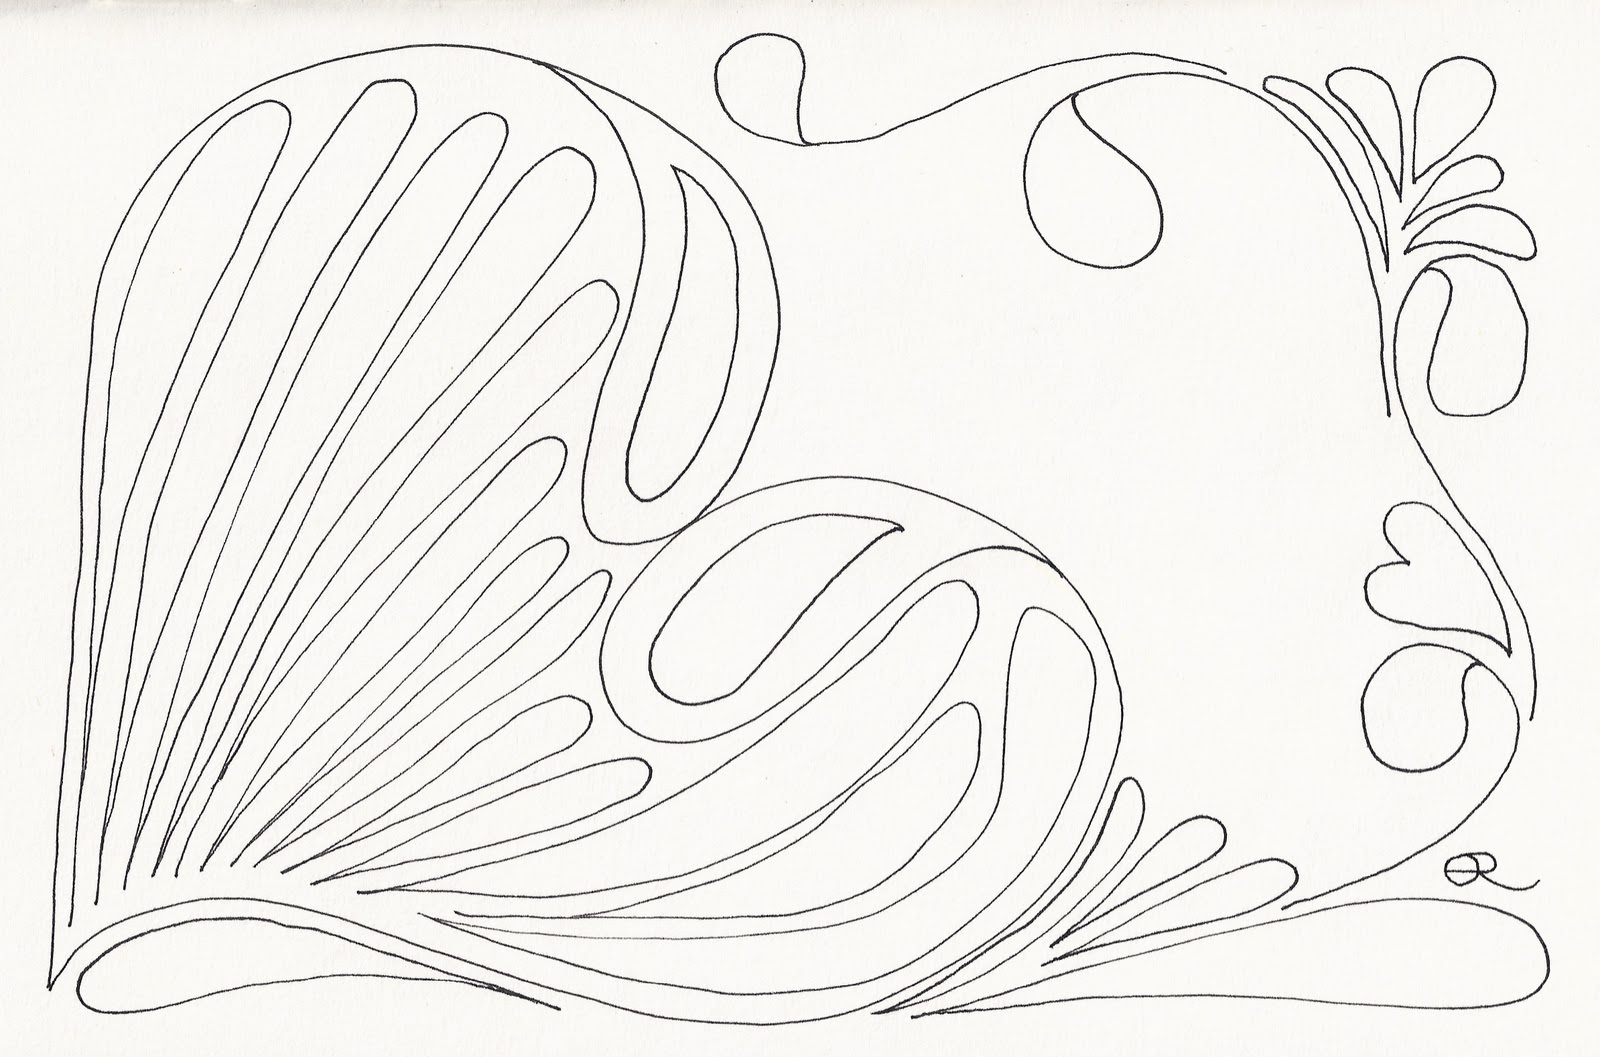 Duke Pages Of Swirls Coloring Pages Swirl Coloring Pages